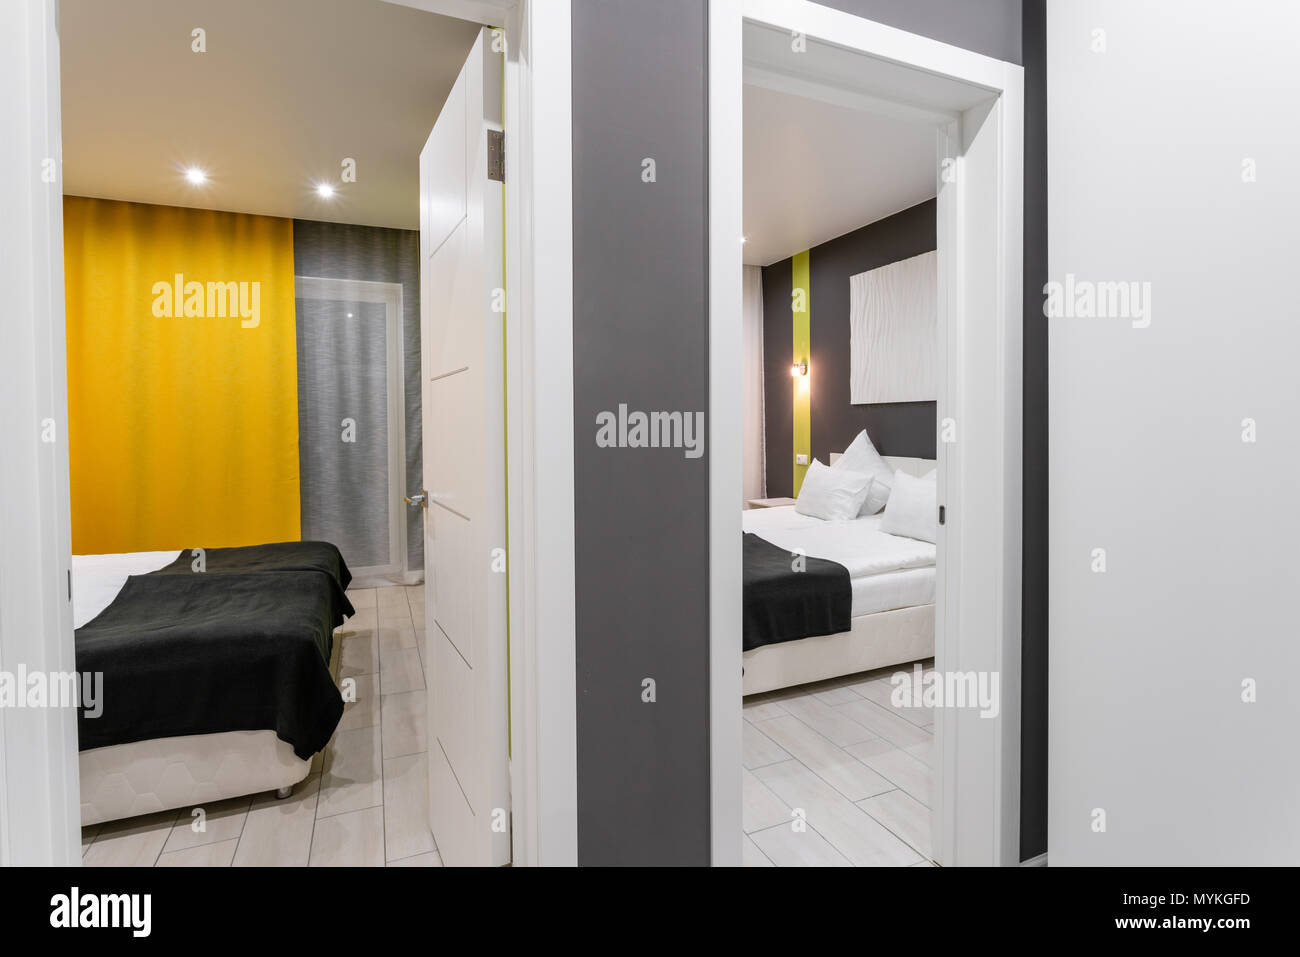 inexpensive family room. Hotel standart two bedroom. simple and stylish interior. interior lighting - Stock Image